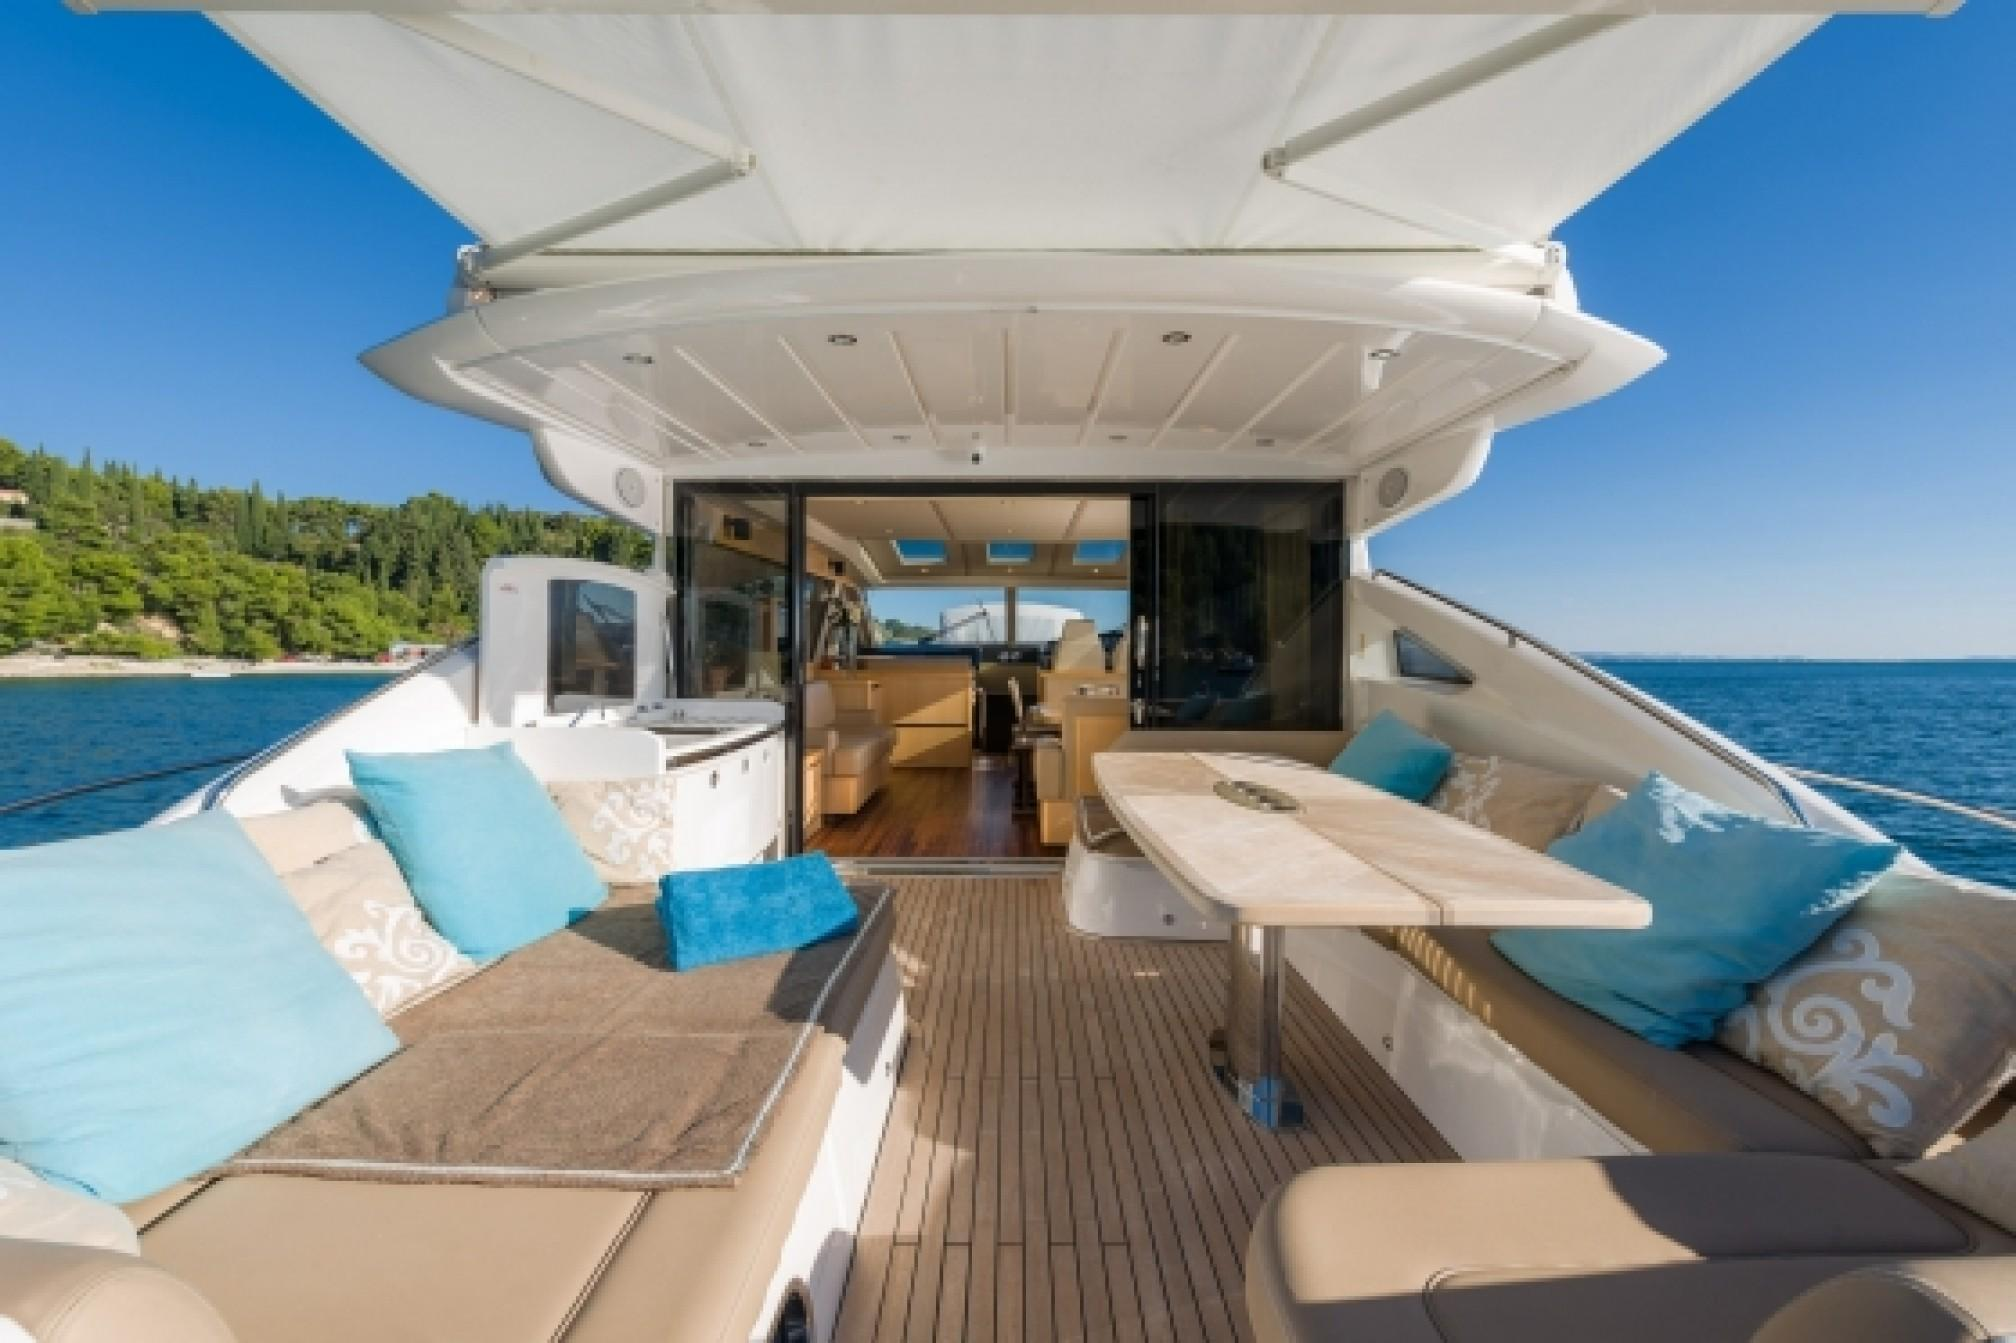 Princess V65 charter yacht outdoors